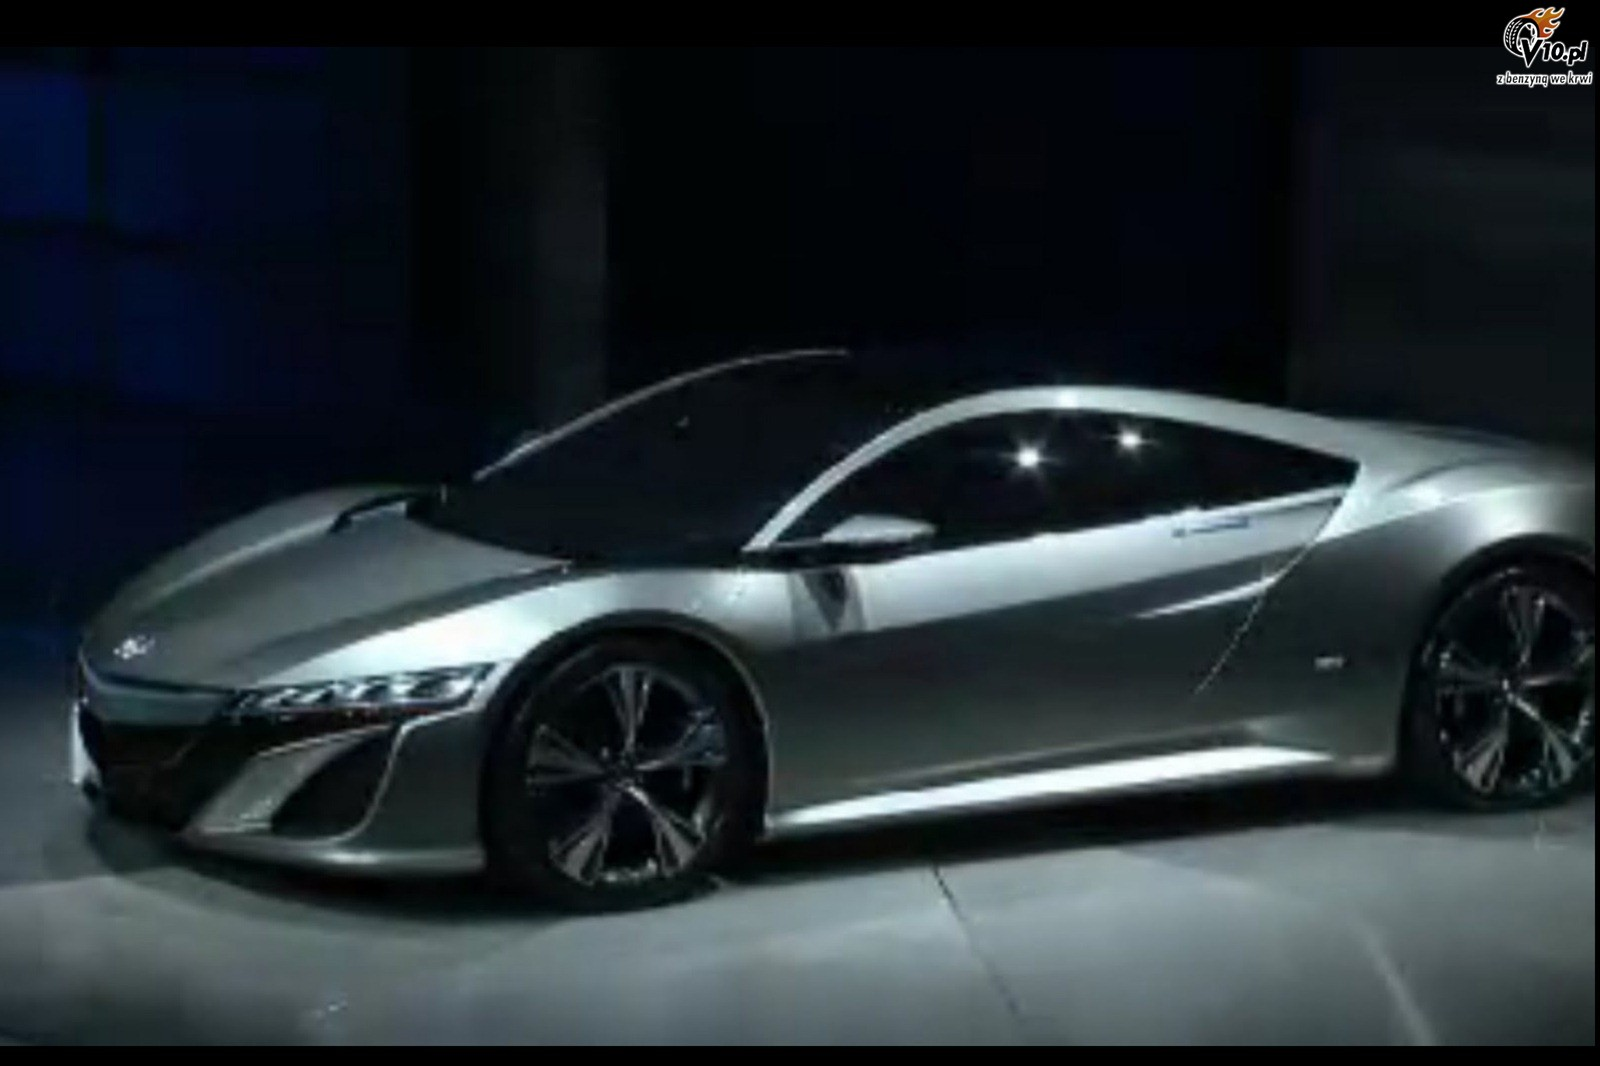 honda nsx related images start 100 weili automotive network. Black Bedroom Furniture Sets. Home Design Ideas